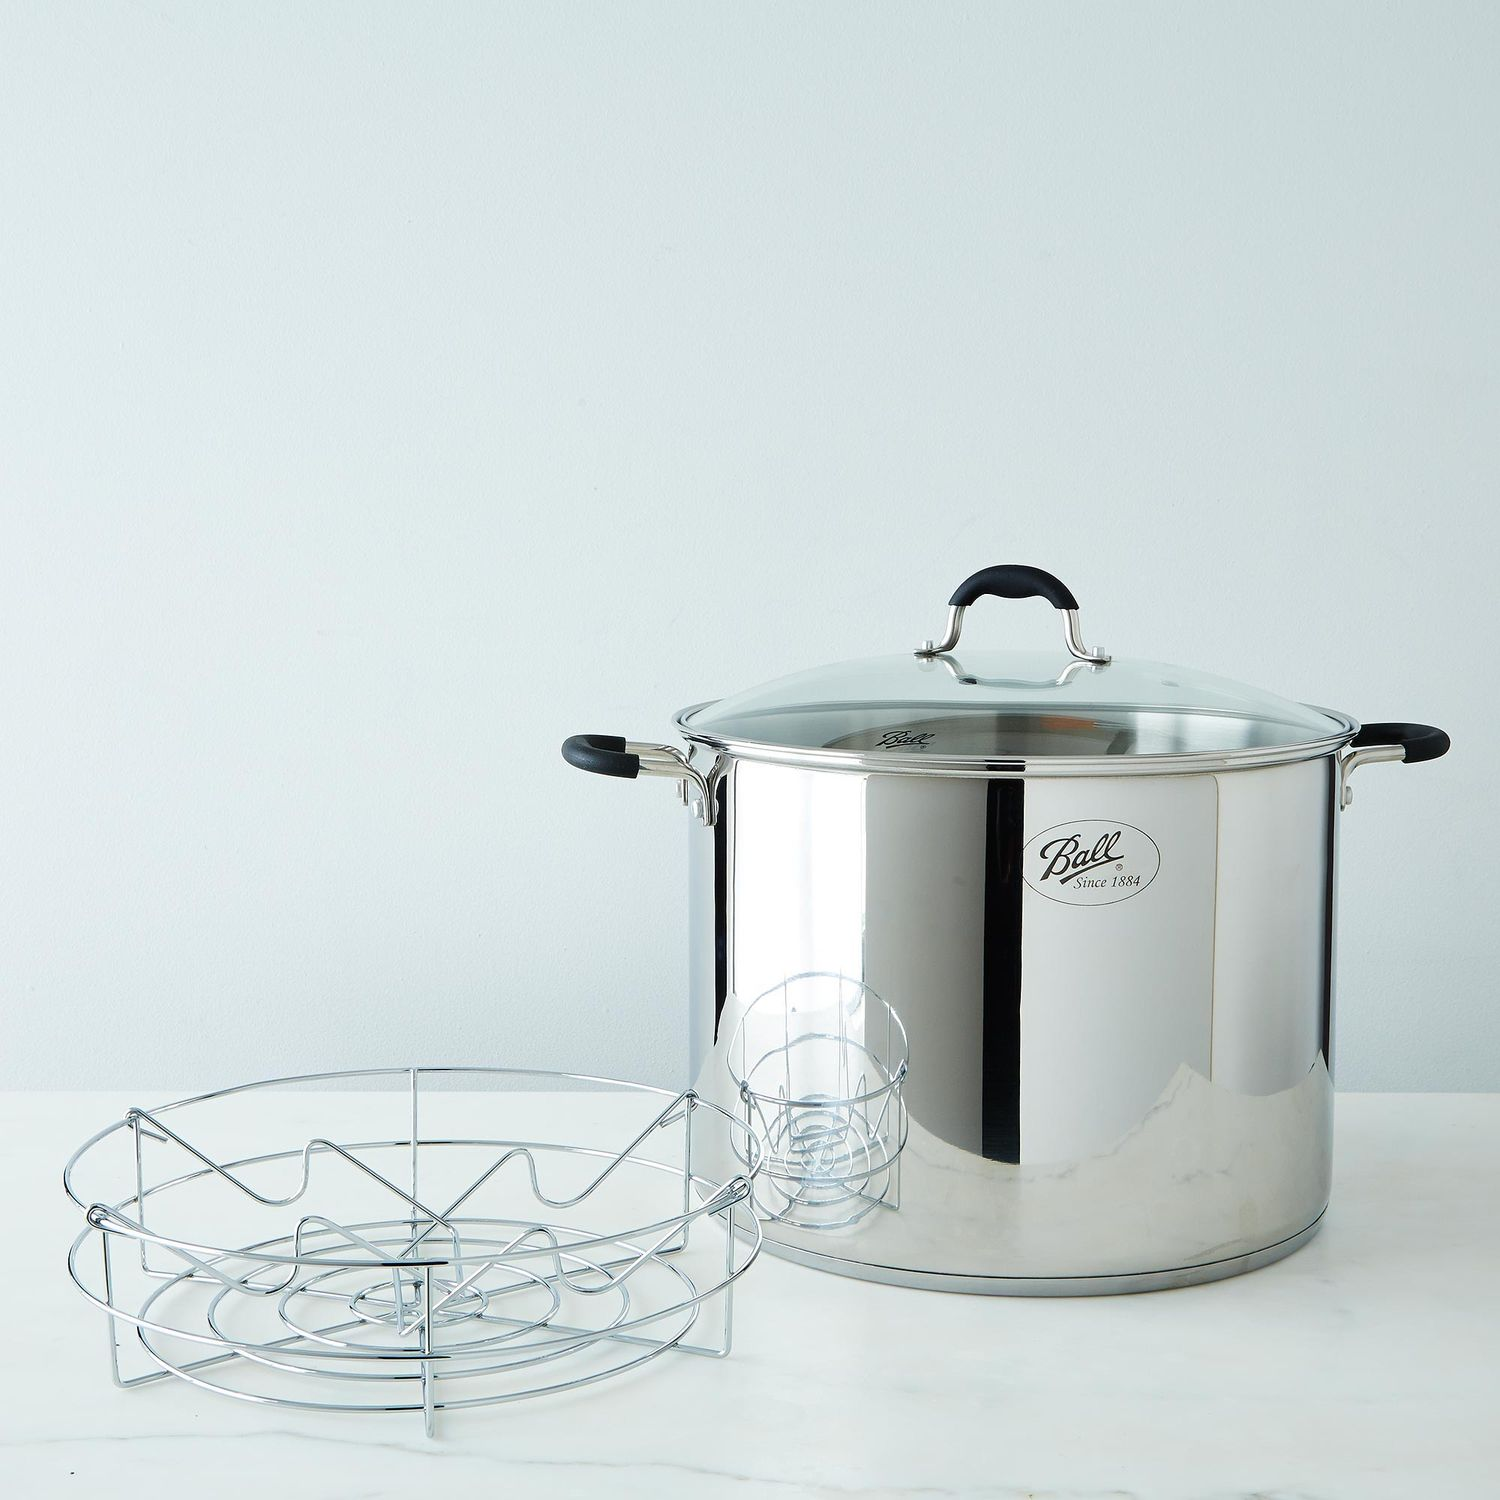 Stainless Steel Water Bath Canner Amp Stockpot 21 Qt On Food52